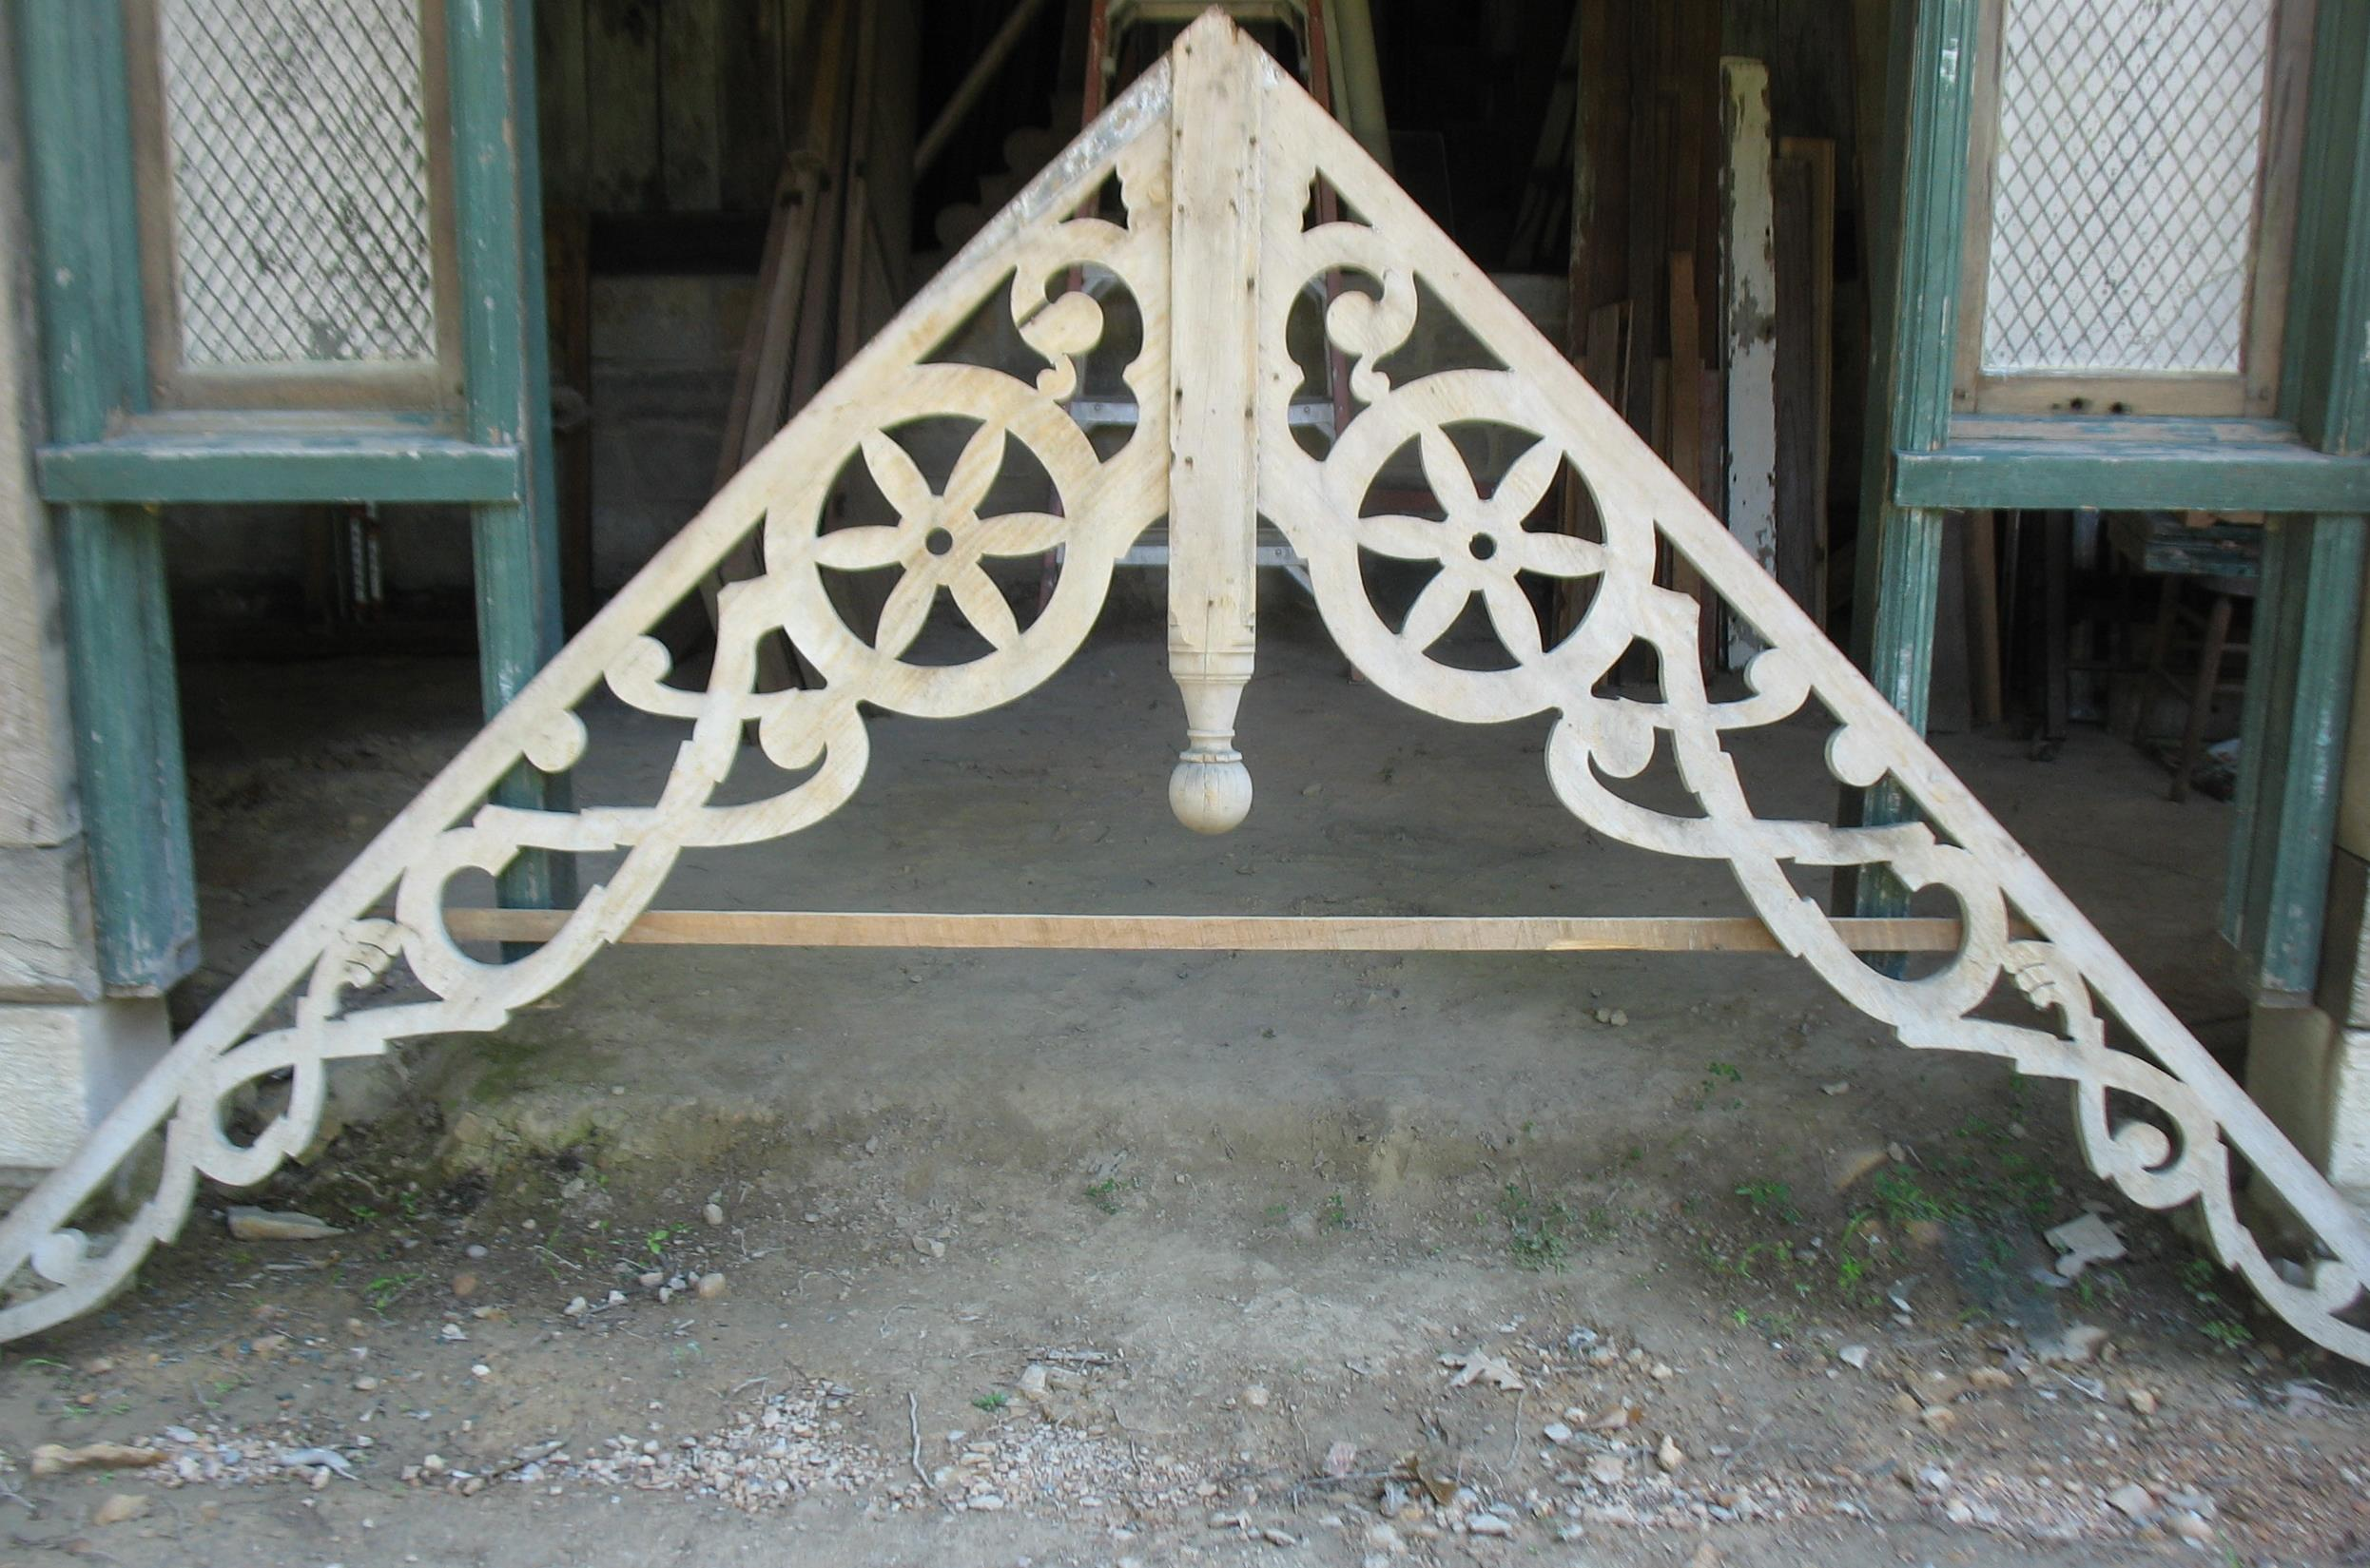 Wonderful Victorian Gable from house in Tennessee built in the late 1880's Would be great for a headboard for a bed or a wall hanging. Measures 7 feet at highest point and 10 feet long    Price: SOLD!!!